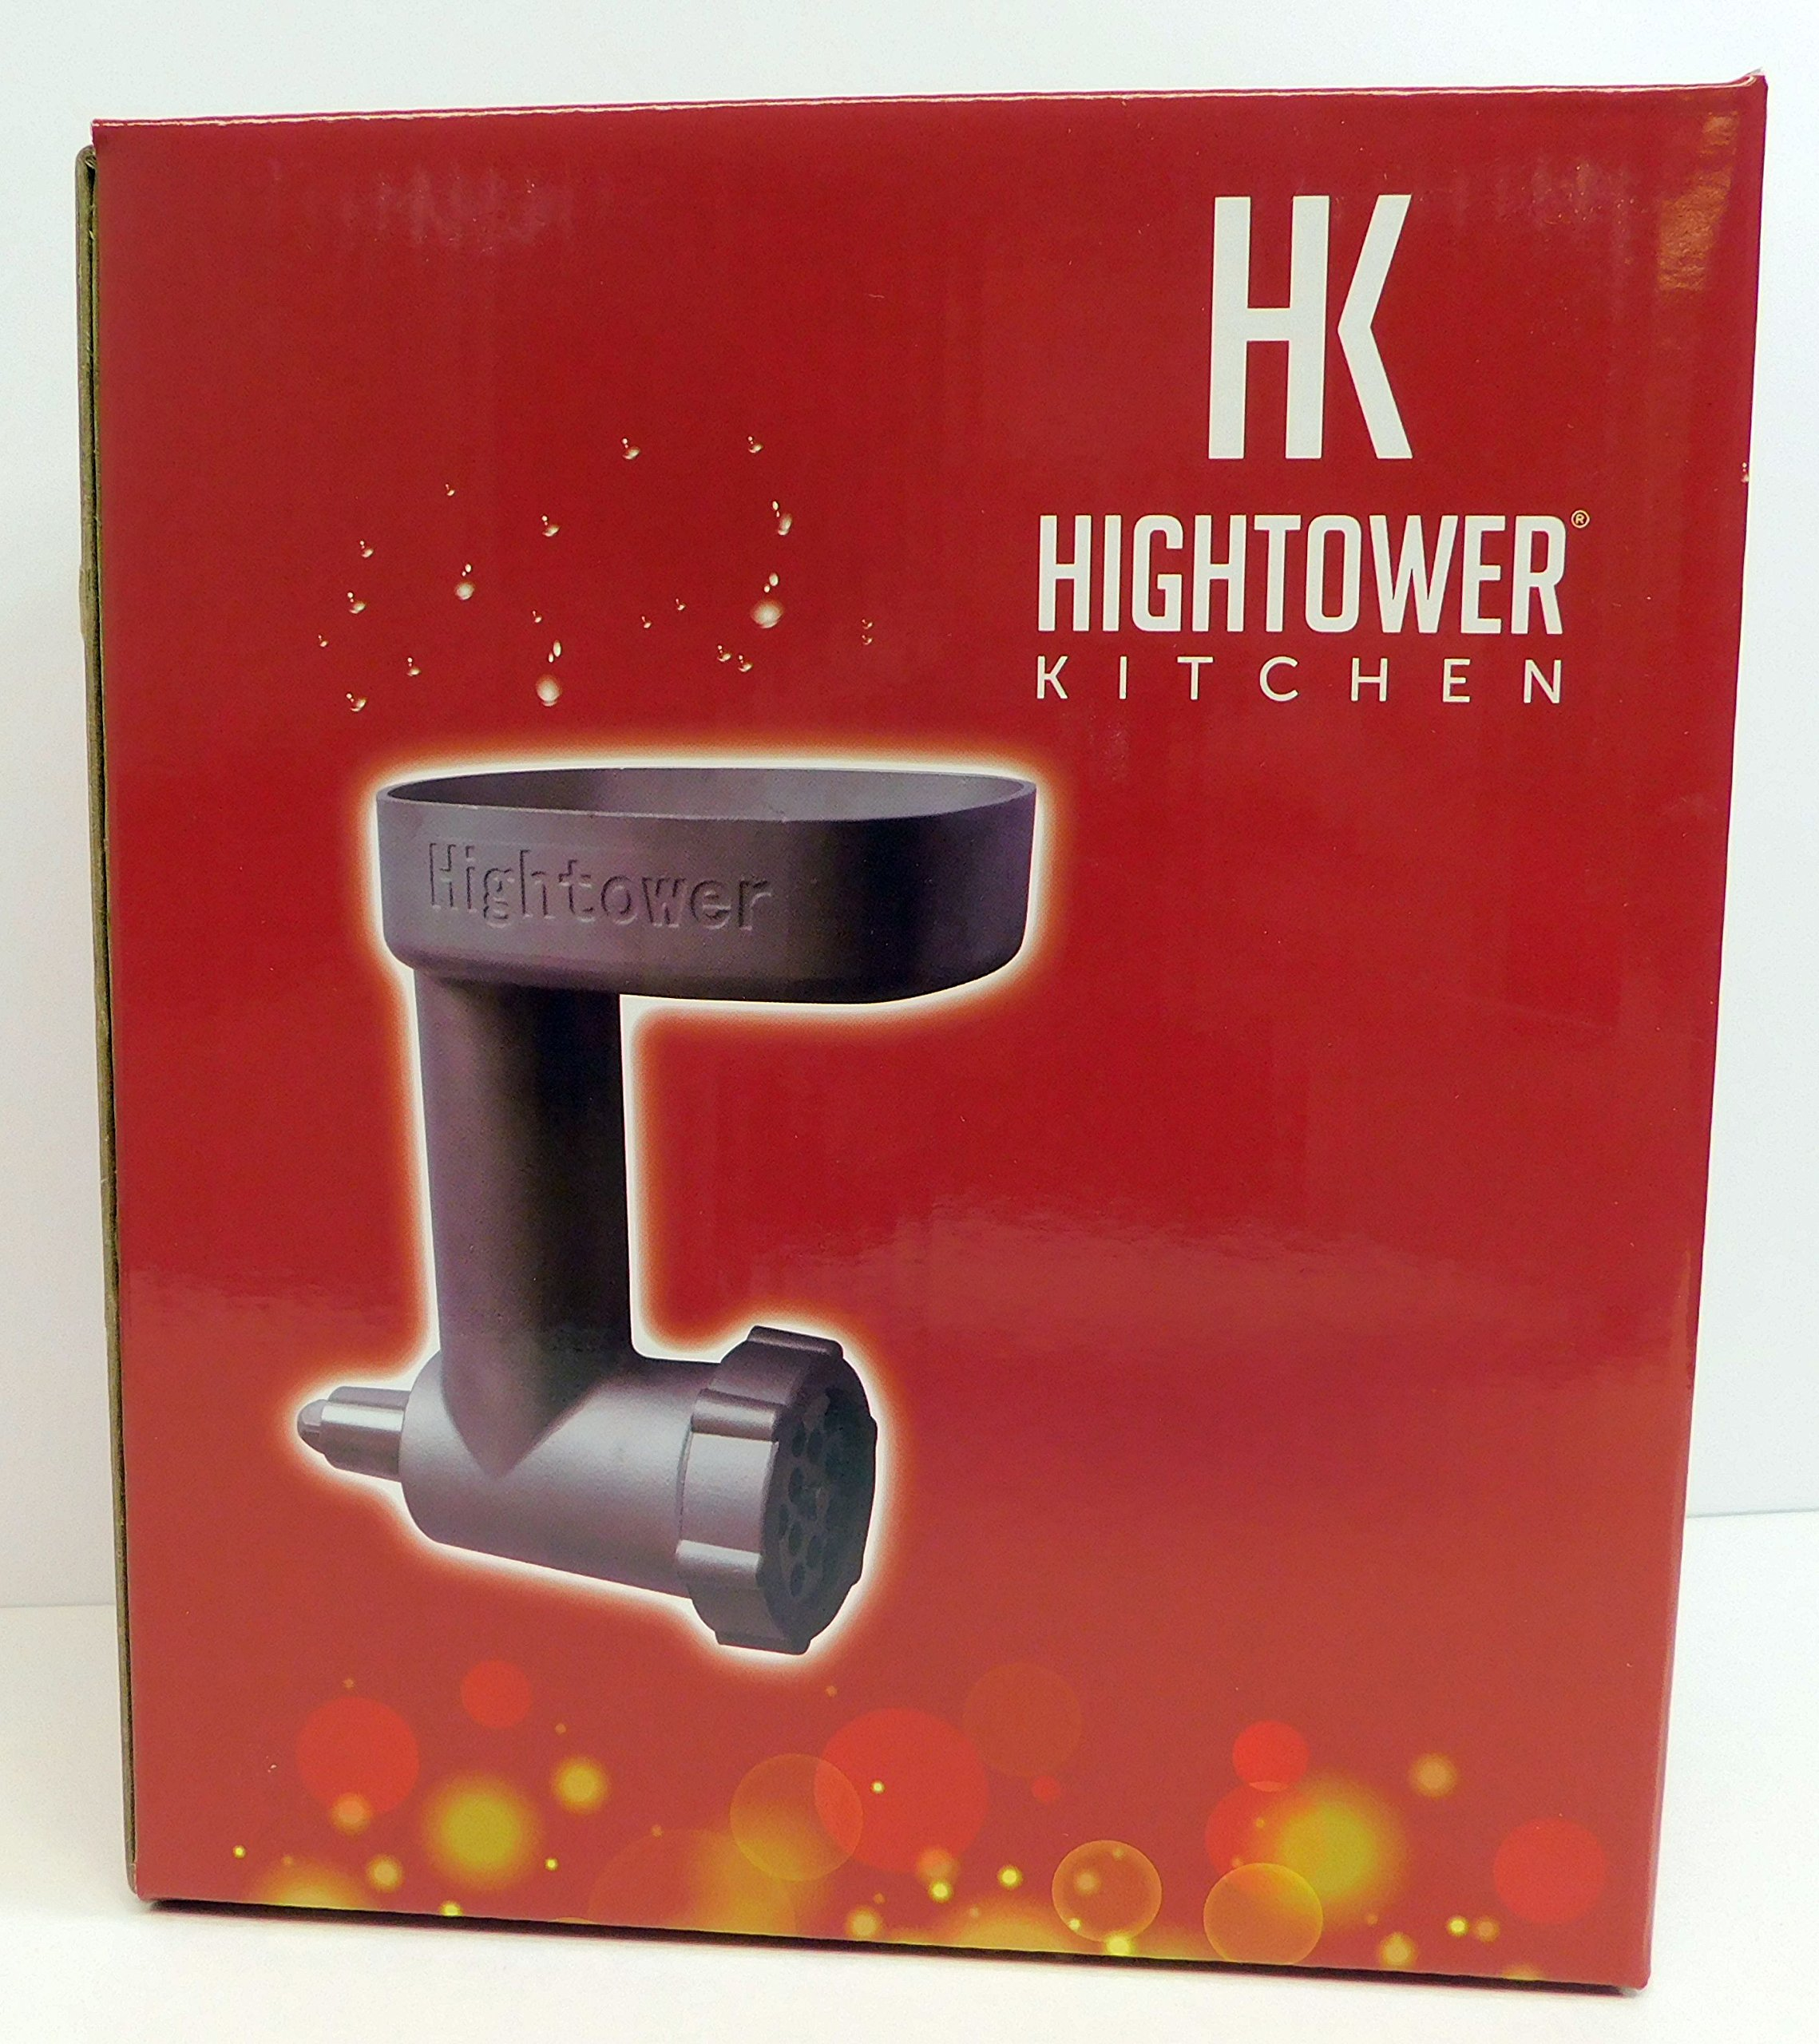 Heavy Duty Stainless Meat Grinder for Kitchenaid Mixer Priority Shipping by Hightower Quality Kitchen